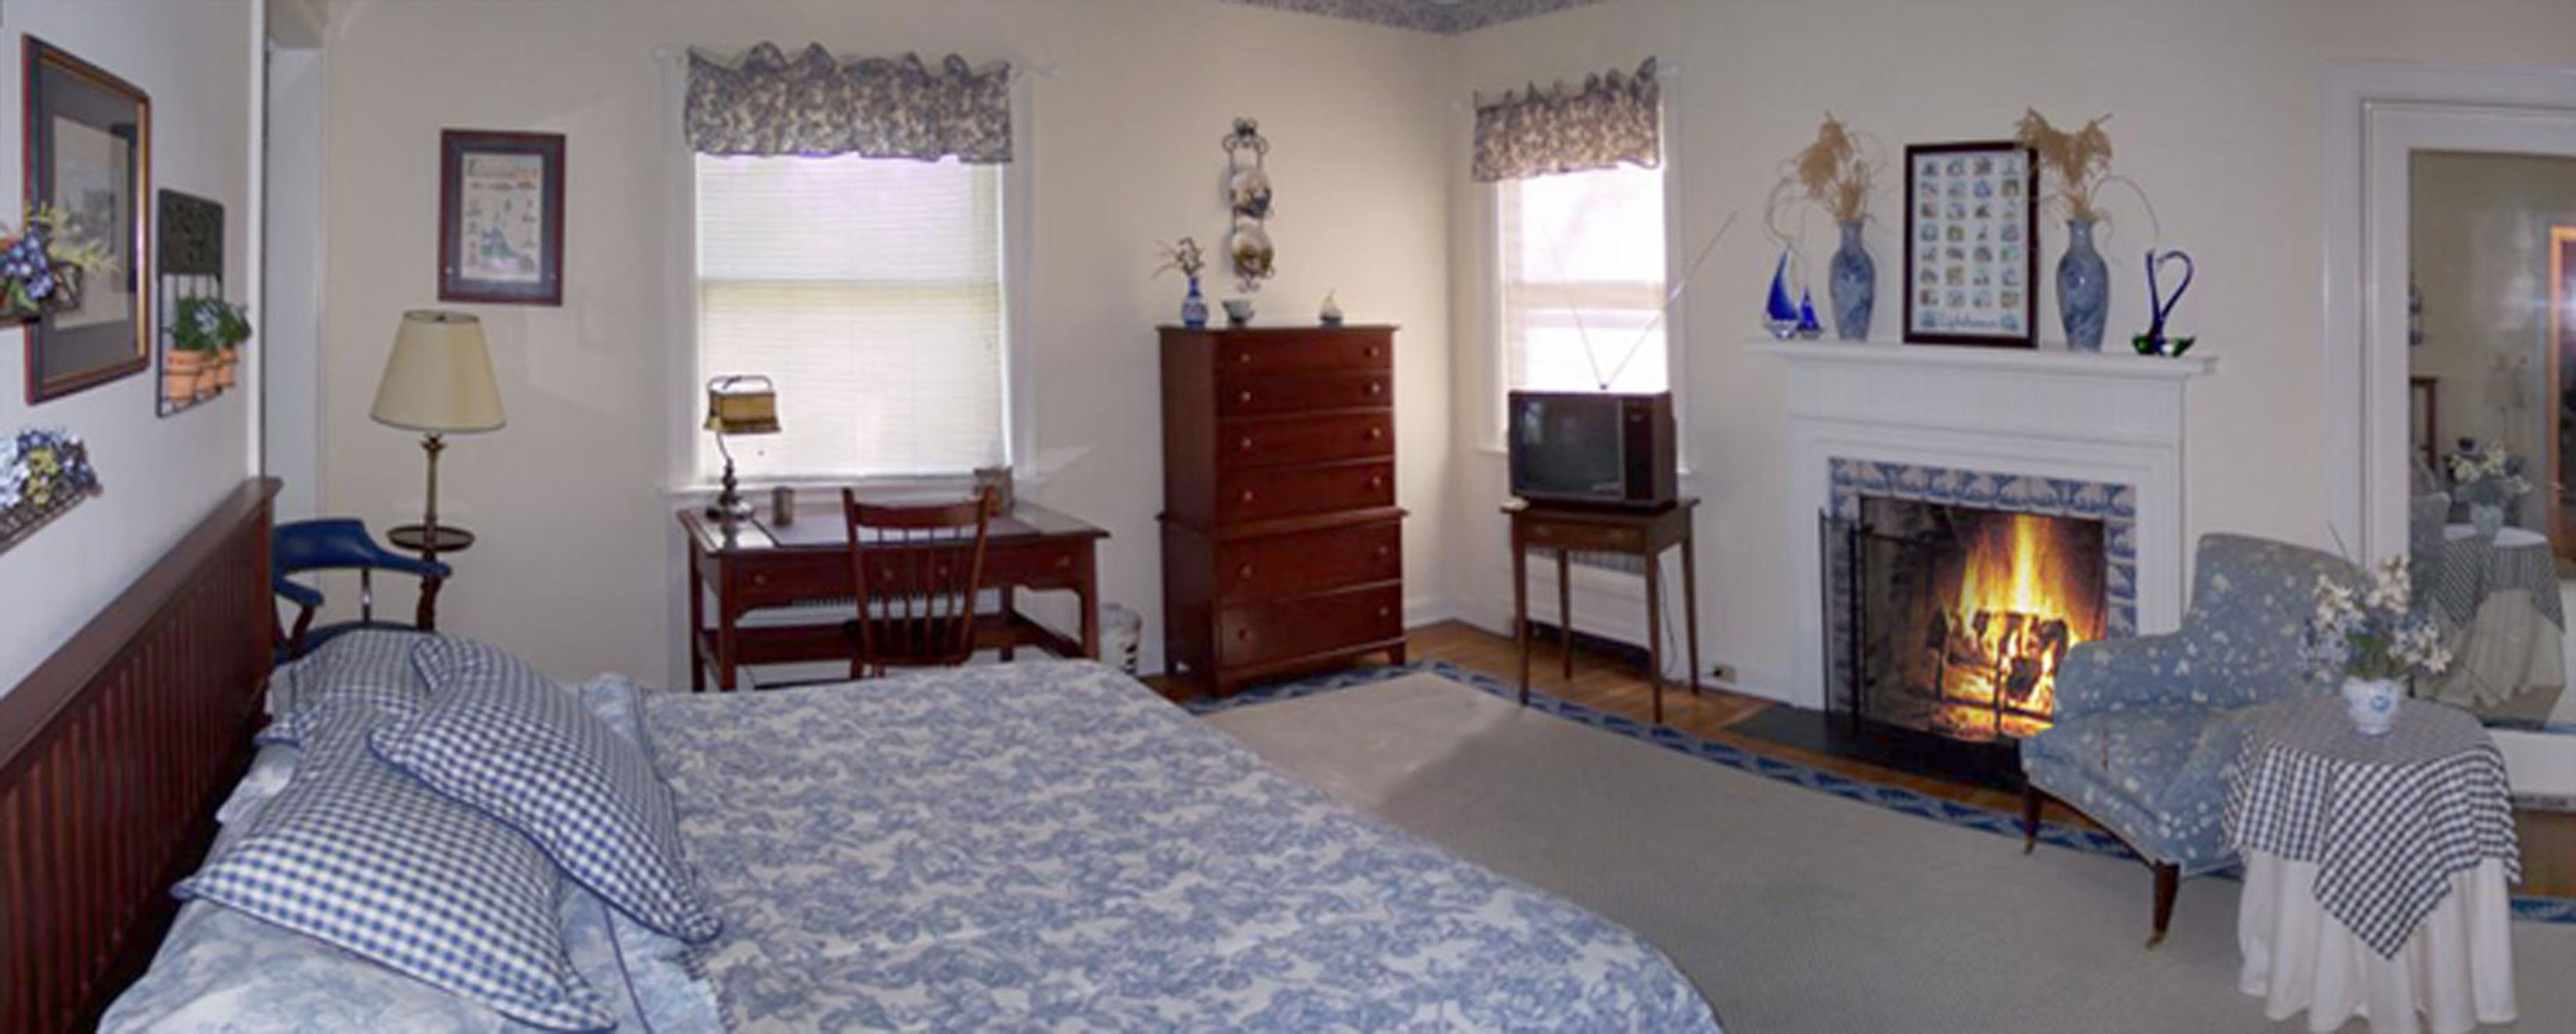 Farrell House Lodge Bedroom